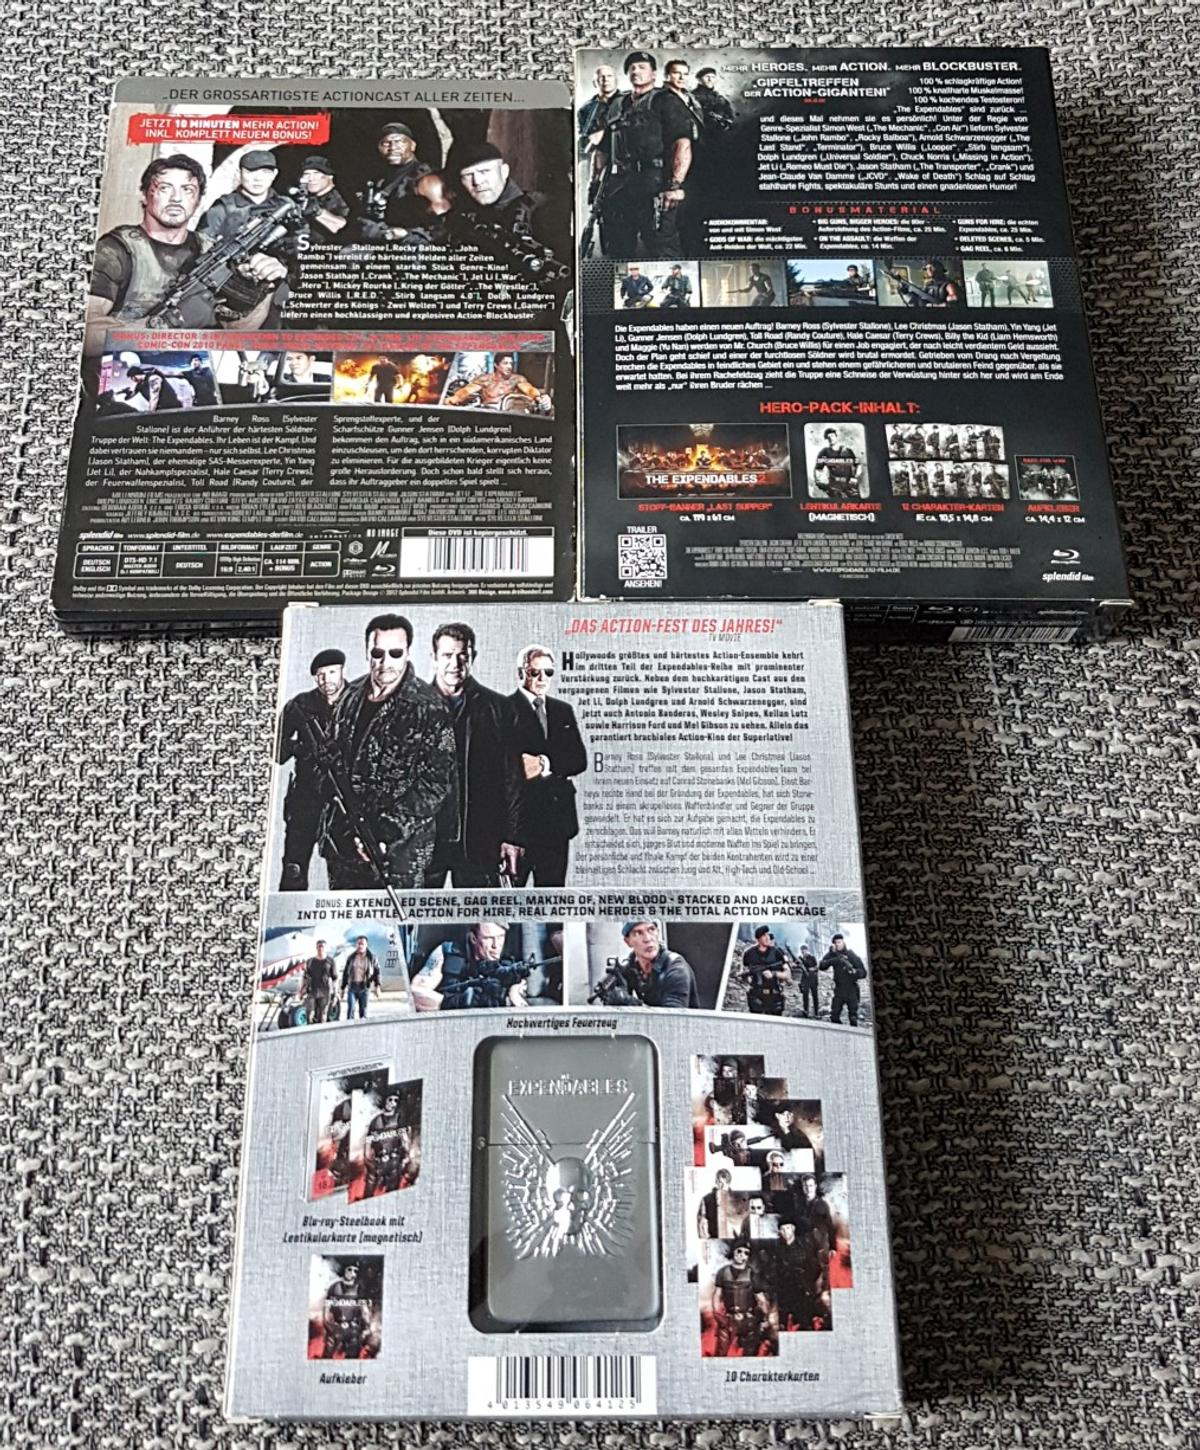 The Expendables Teil 1 - 3 Steelbook auf Bluray.  • The Expendables Choose your Weapon Extended Director's Cut Steelbook CD neuwertig • The Expendables 2 Back for War Limited Uncut Hero Pack Steelbook, vollständig CD neuwertig bis sehr gut • The Expendables 3 A Man's Job Extended Director's Cut Hero Pack Steelbook, vollständig CD neuwertig  Die Blu-Ray's wurden nur 1x gesehen.  Versand und Abholung ist möglich.  blu-ray , blu - ray